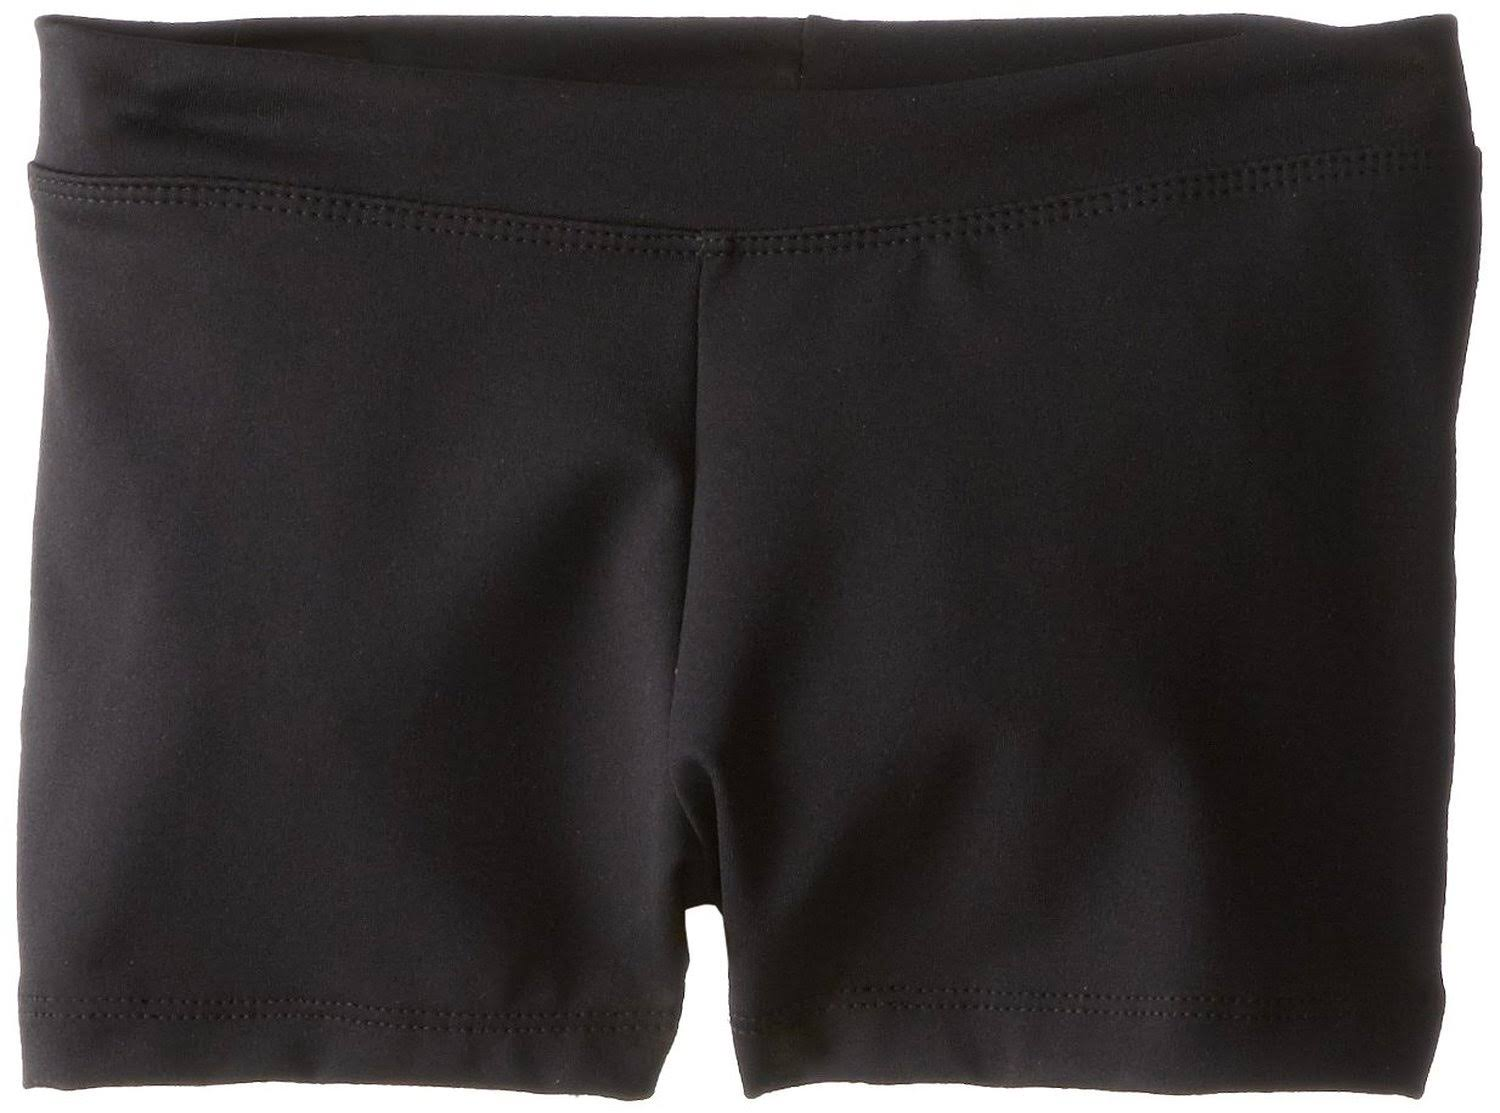 Capezio Girls' Boy Cut Low Rise Shorts - Black, Intermediate 6-8